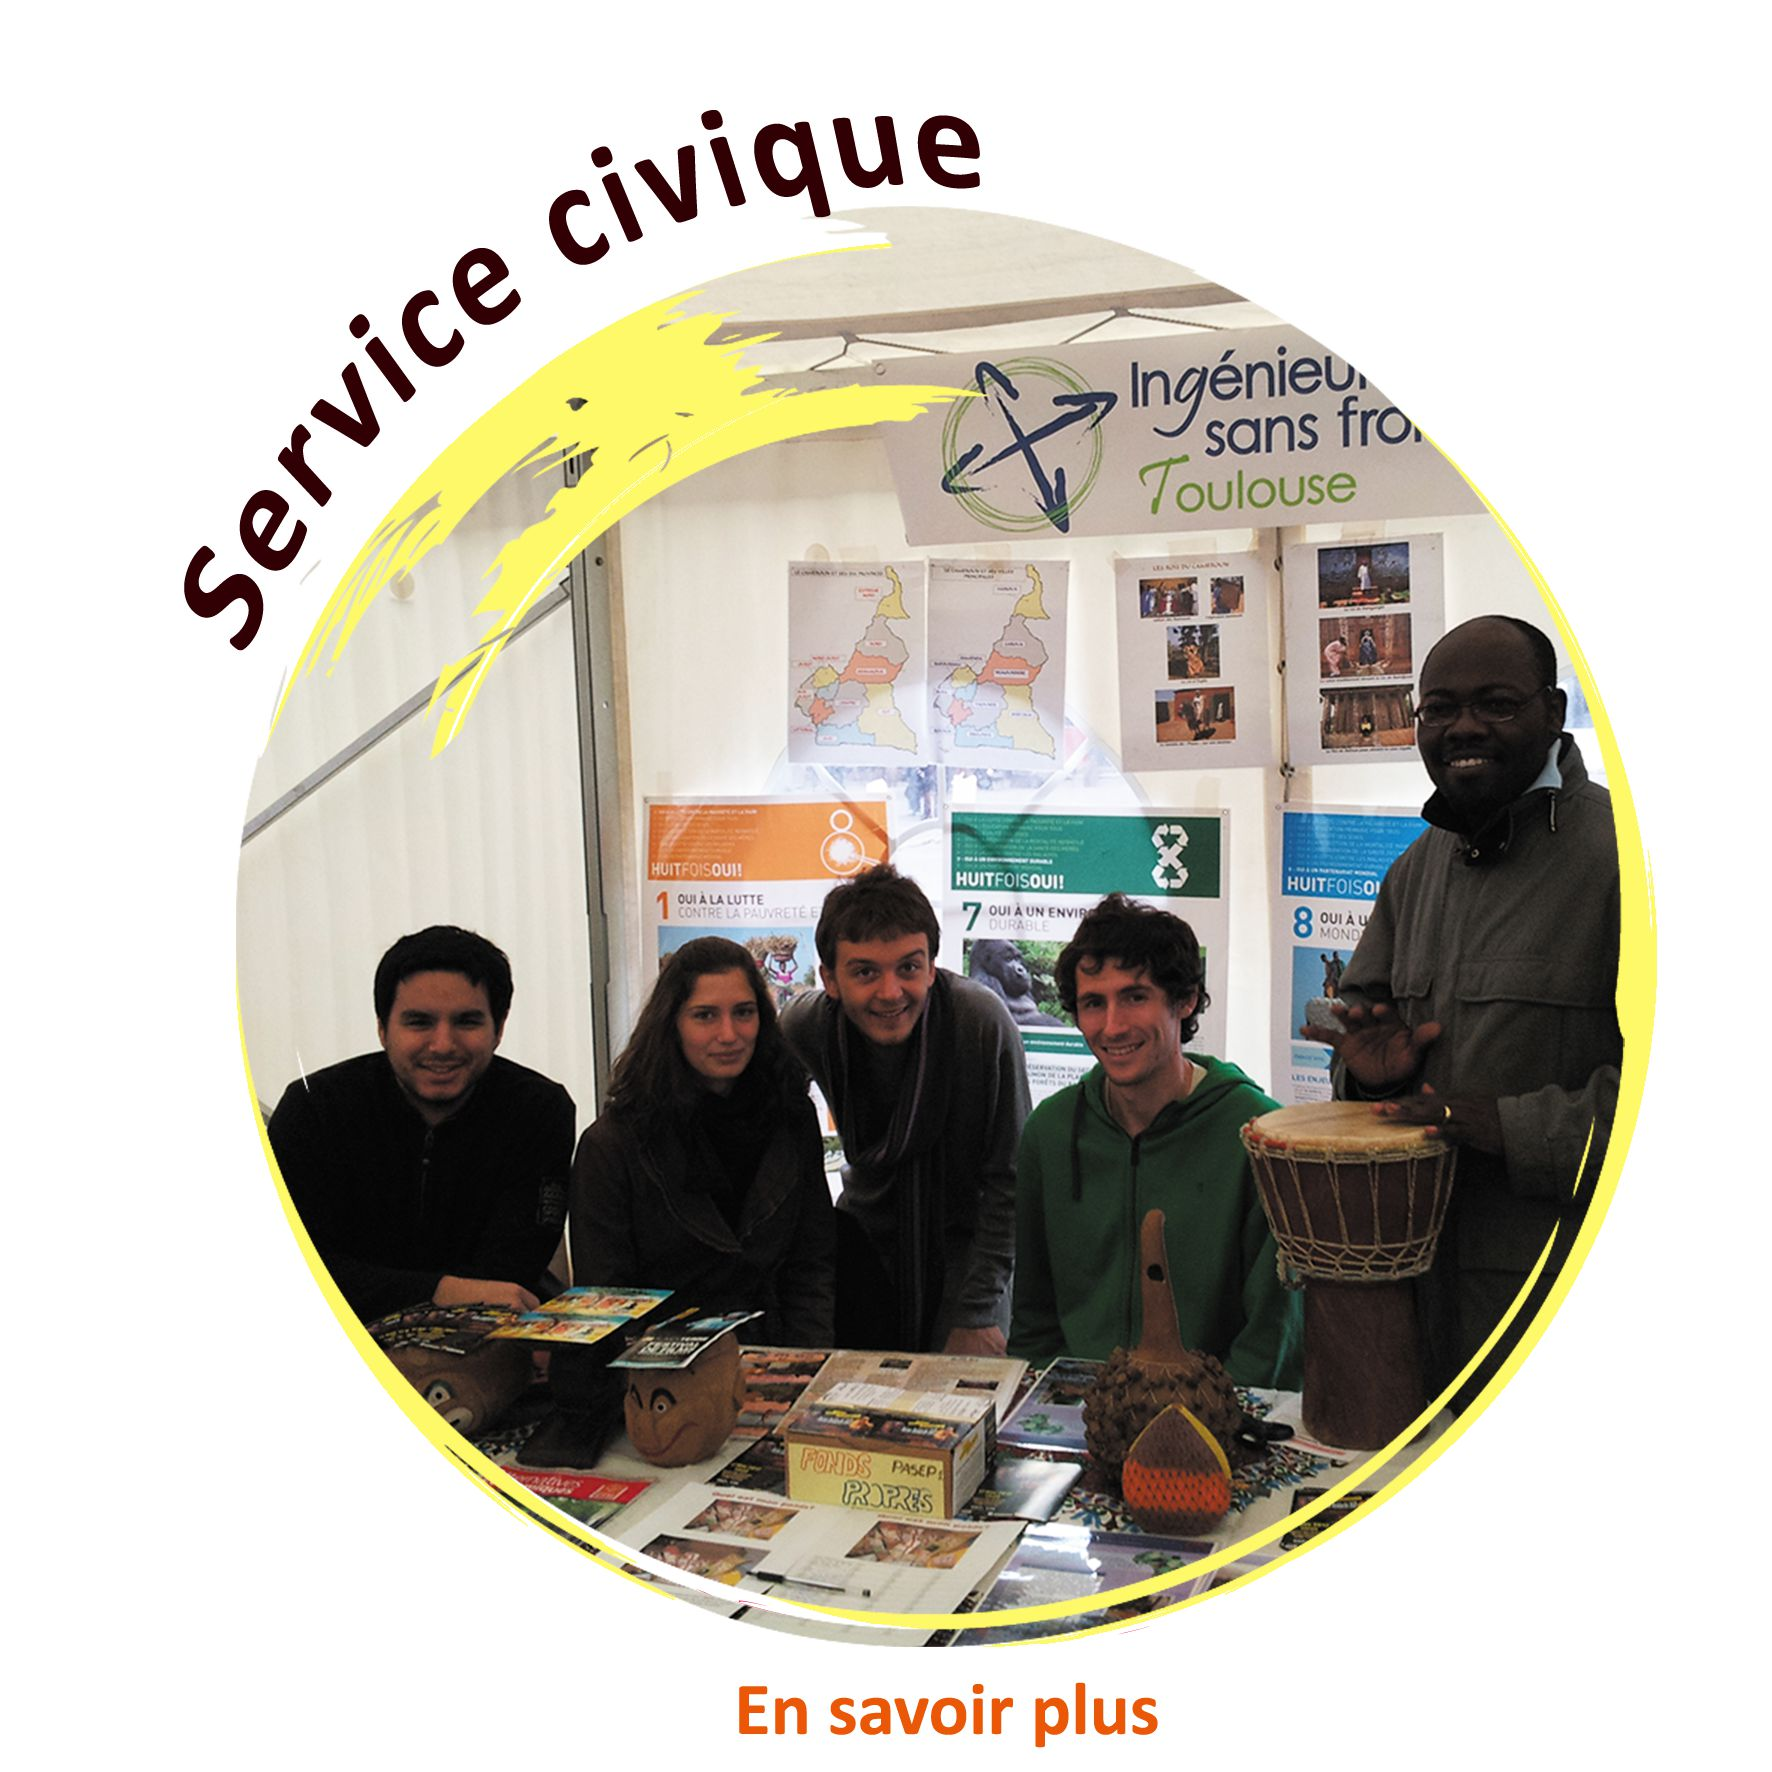 service civique ConvertImage